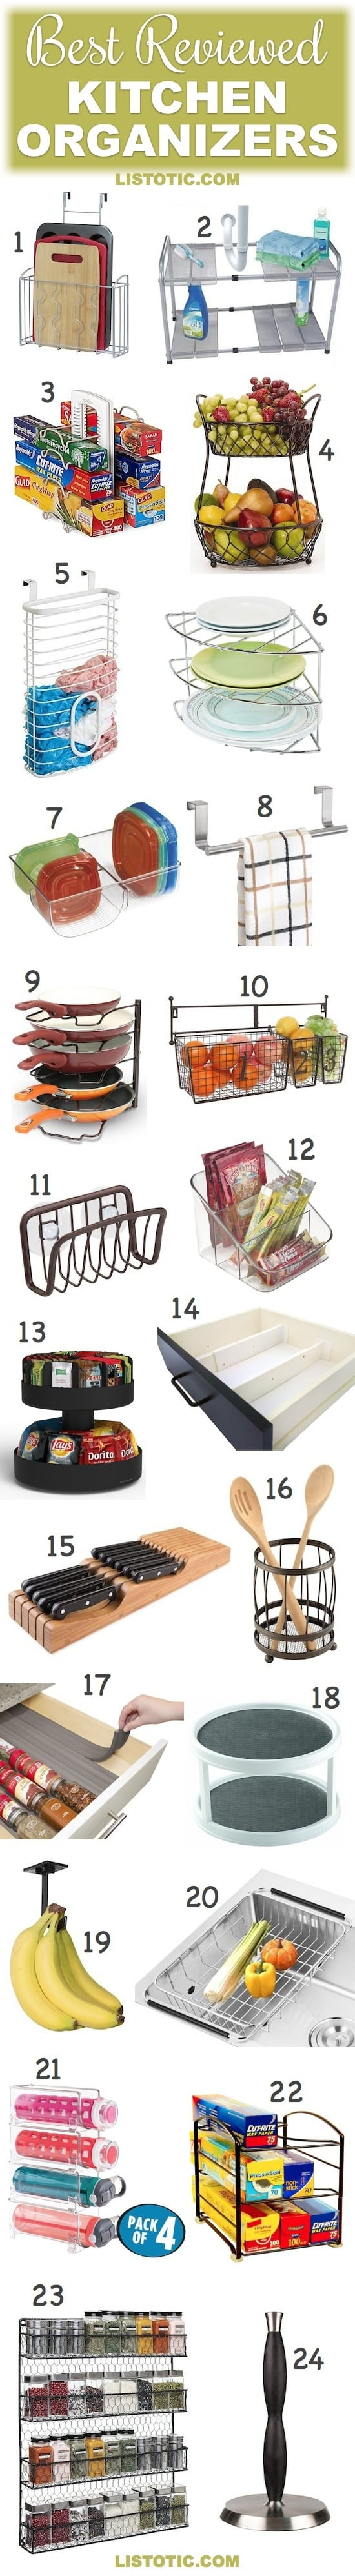 Small Kitchen Organization Ideas | These organizers are great for the pantry shelves, cabinets, under the sink or countertops... especially for small space kitchens or apartments (on a budget). | Listotic.com